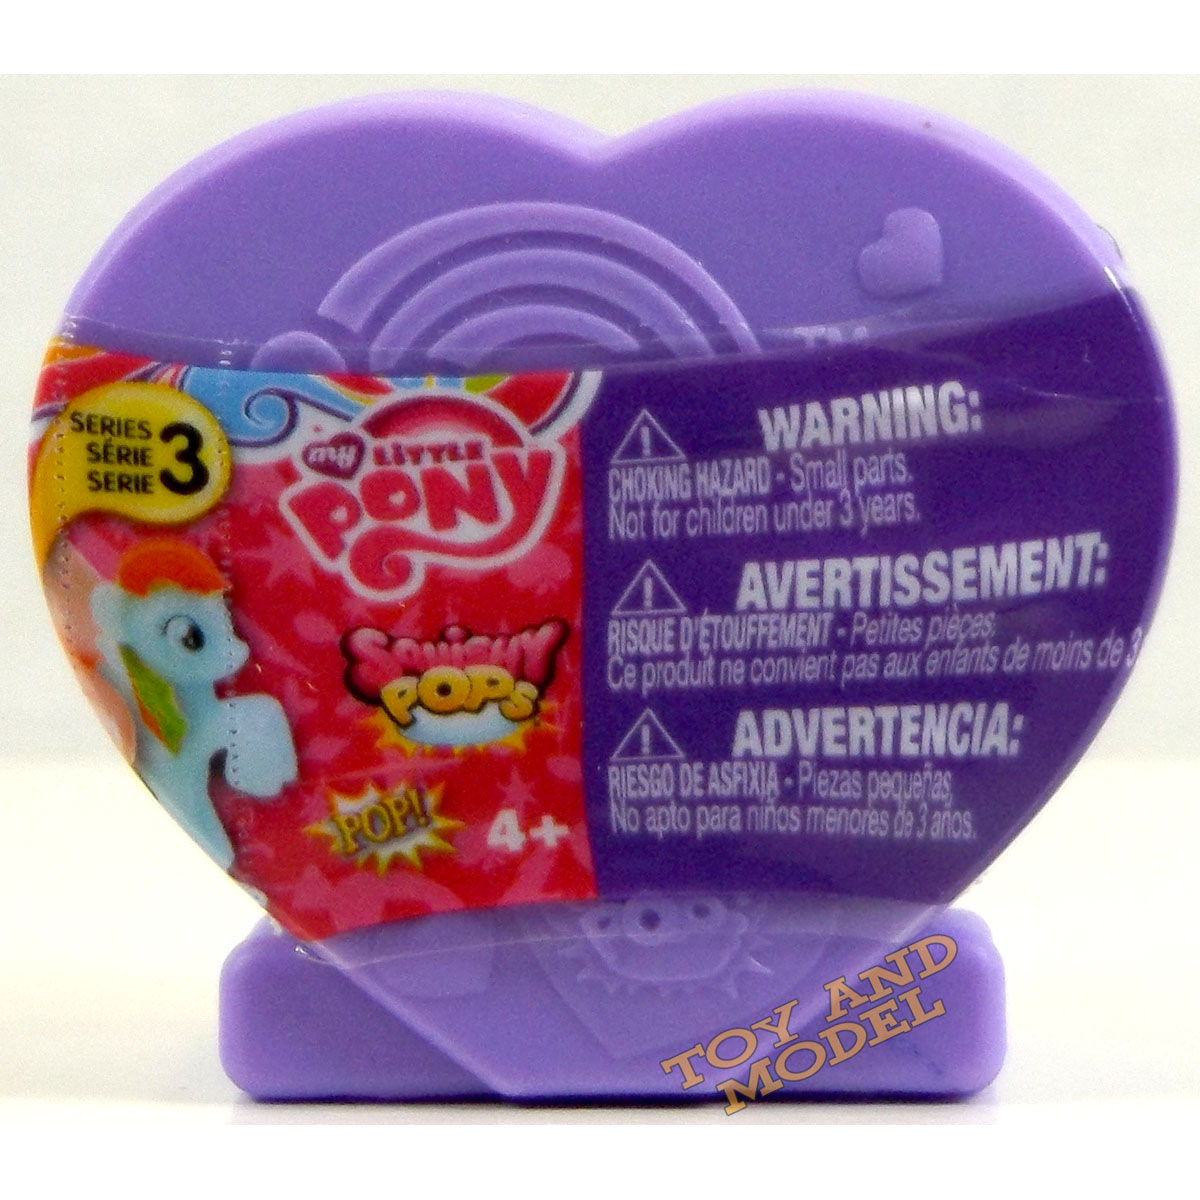 Mlp Squishy Toys : 5 Pack of My Little Pony Squishy Pops Heart Case Series 3 - Fast Dispatch 4Yrs+ eBay